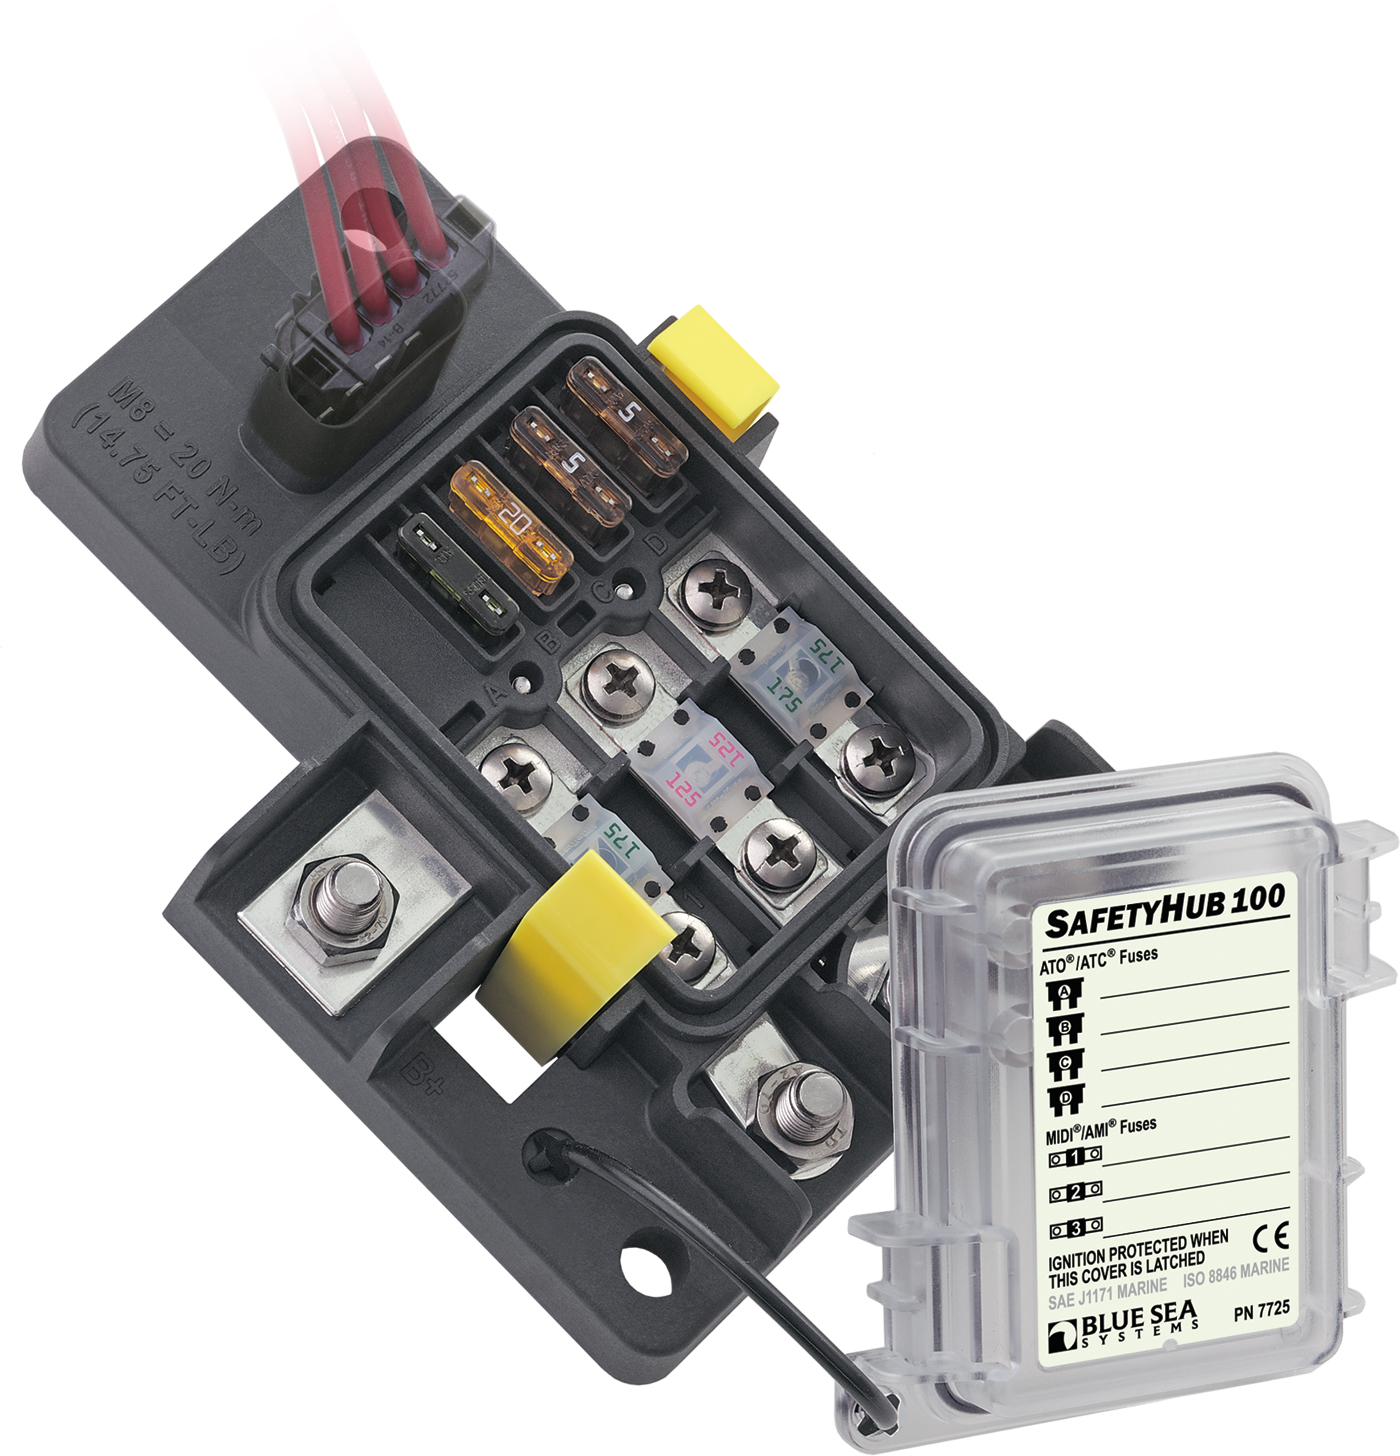 BSS7725 blue sea systems 7725 fuse block safety hub 100 marine fuse box at gsmx.co